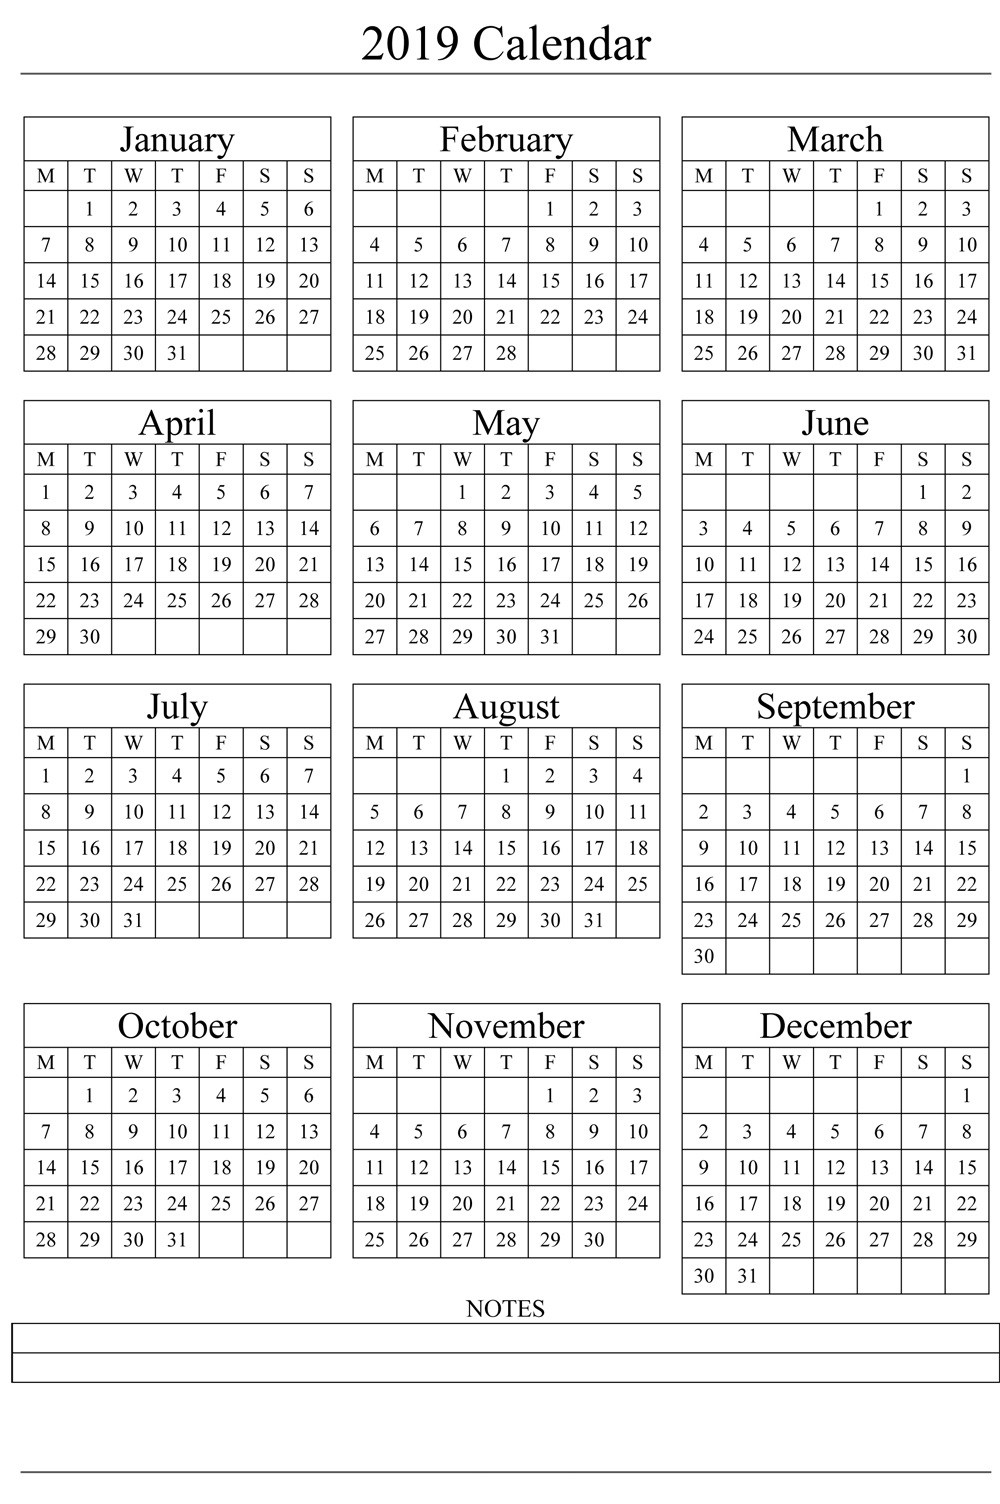 Year 2019 Calendar Template With Printable Templates Blank Word PDF 2018